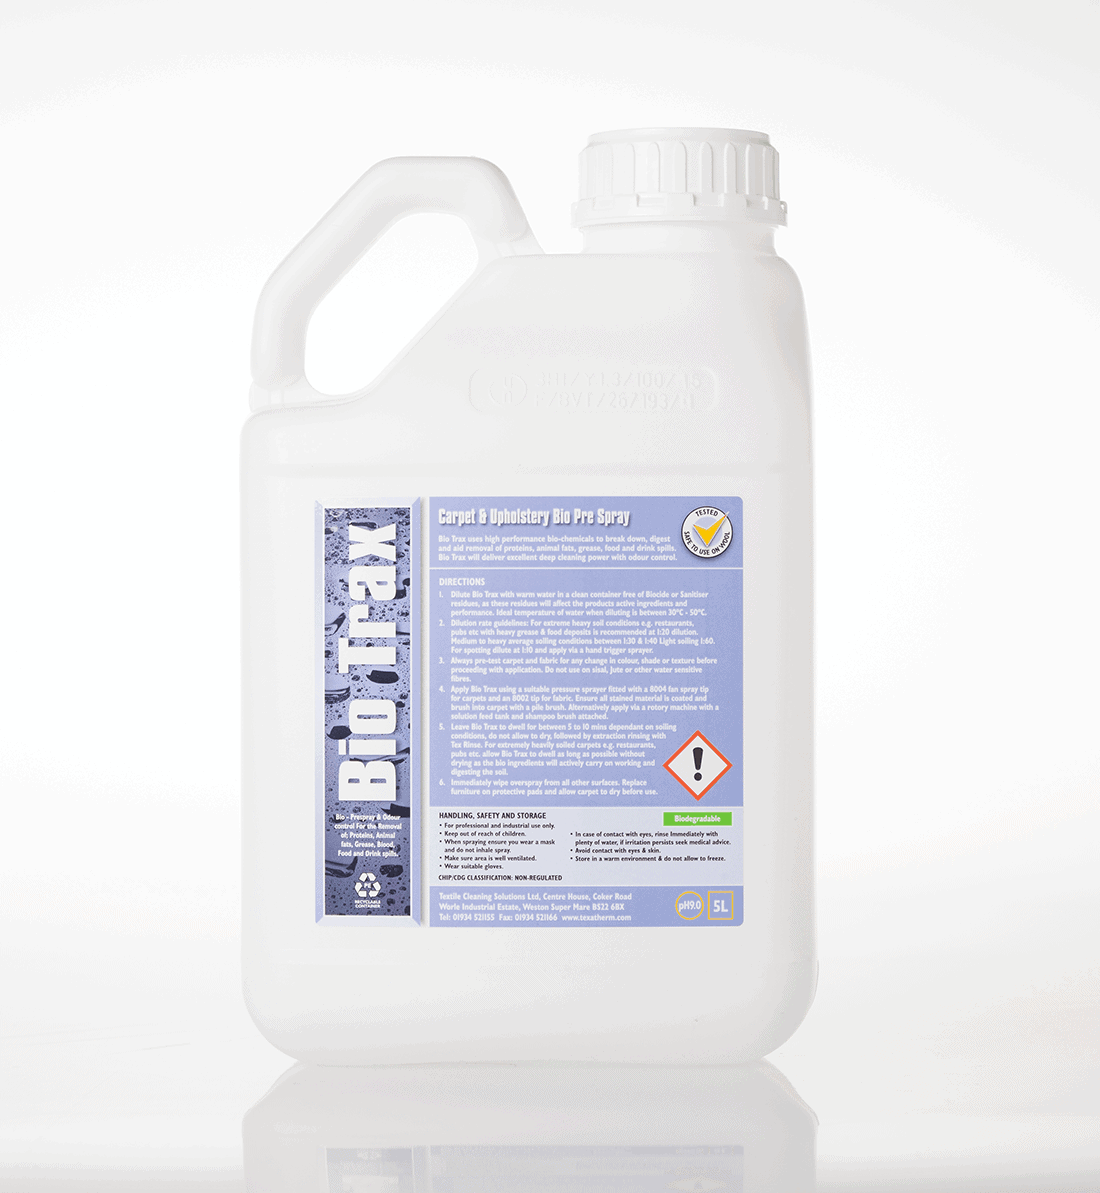 Professional carpet cleaning chemical for organic staining